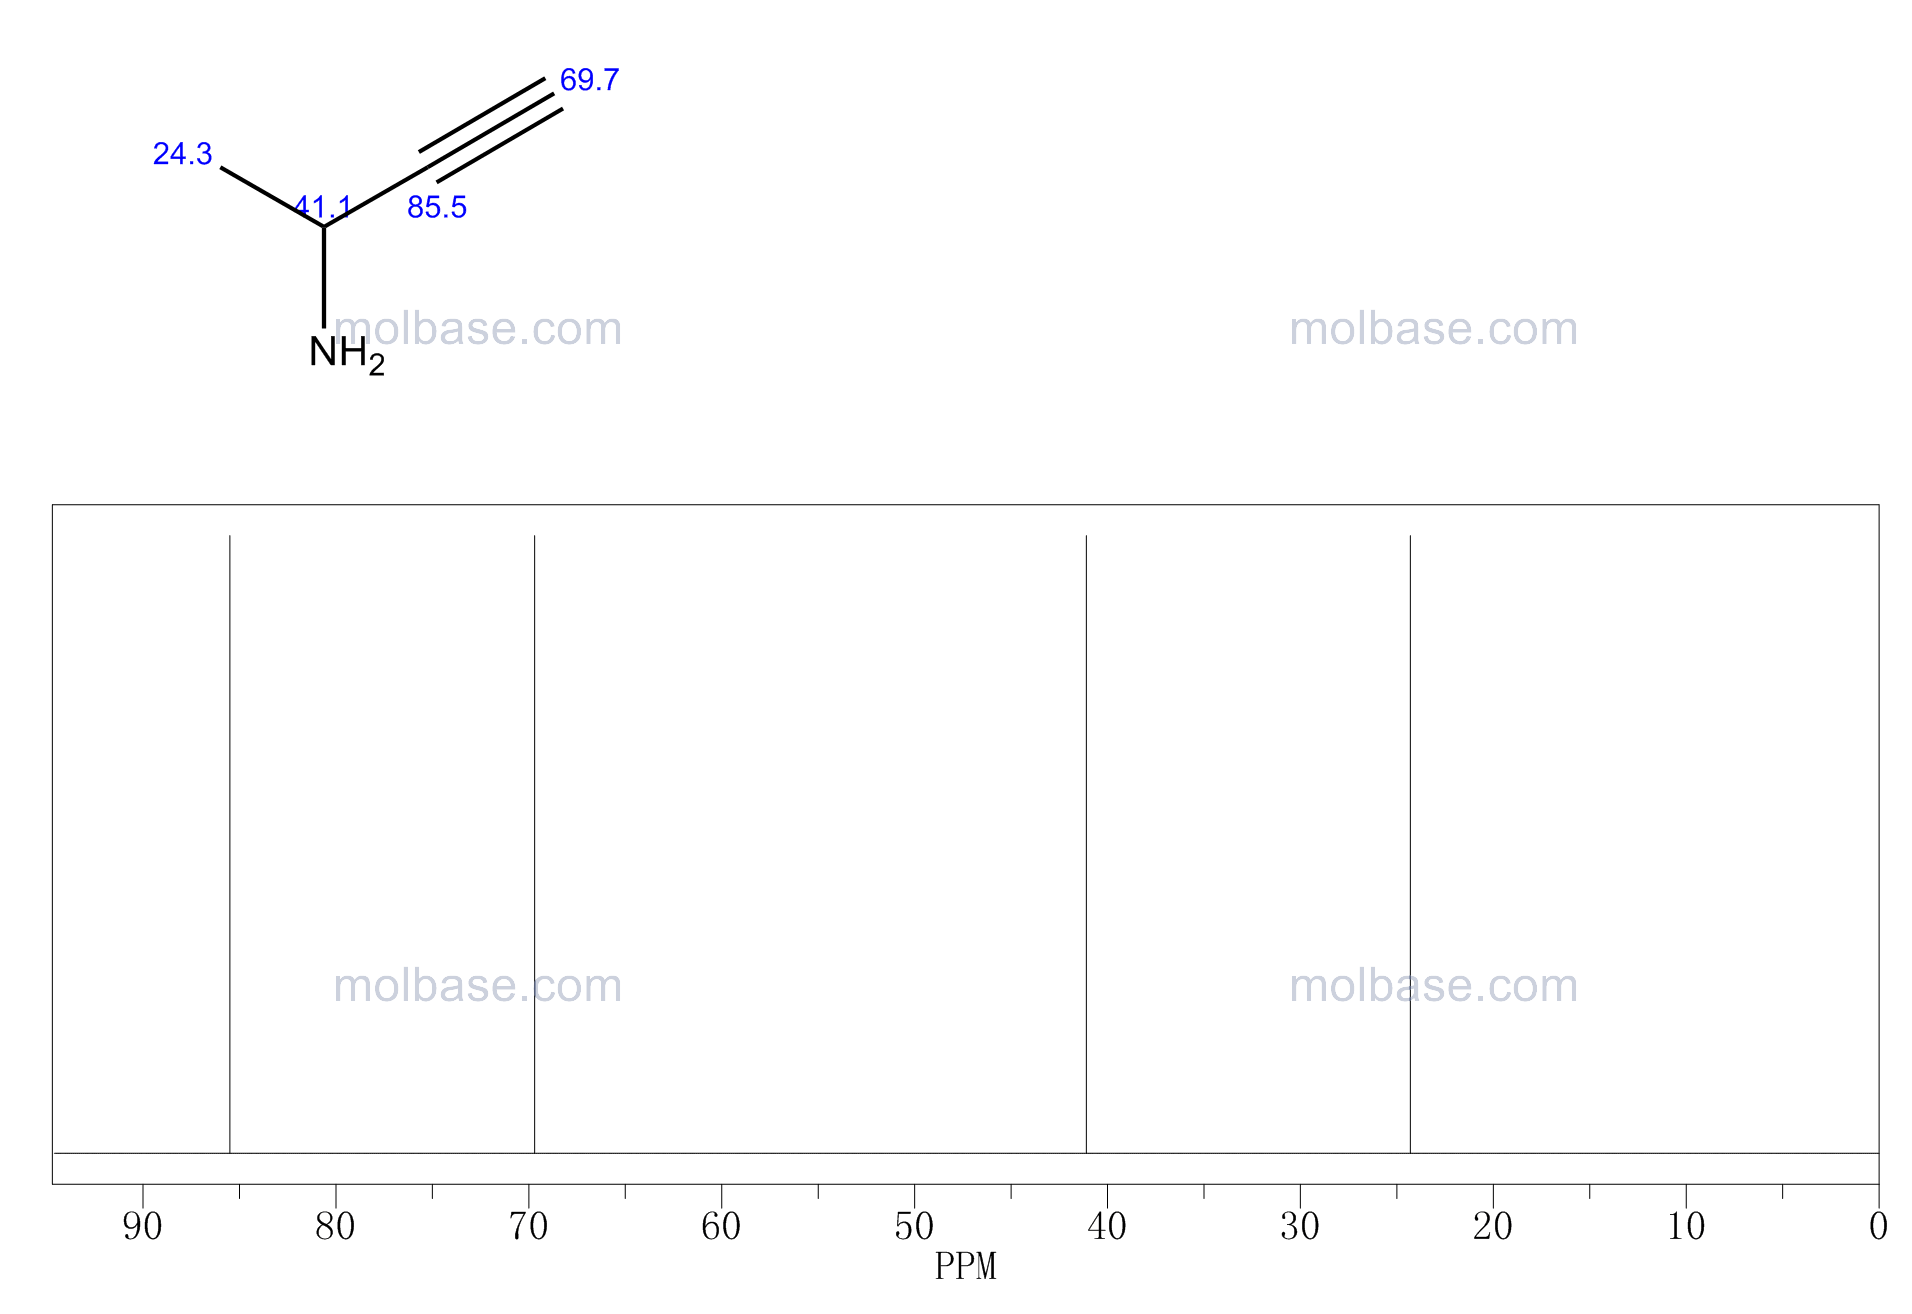 but-3-yn-2-amine NMR spectra analysis, Chemical CAS NO. 30389-17-4 NMR spectral analysis, but-3-yn-2-amine C-NMR spectrum